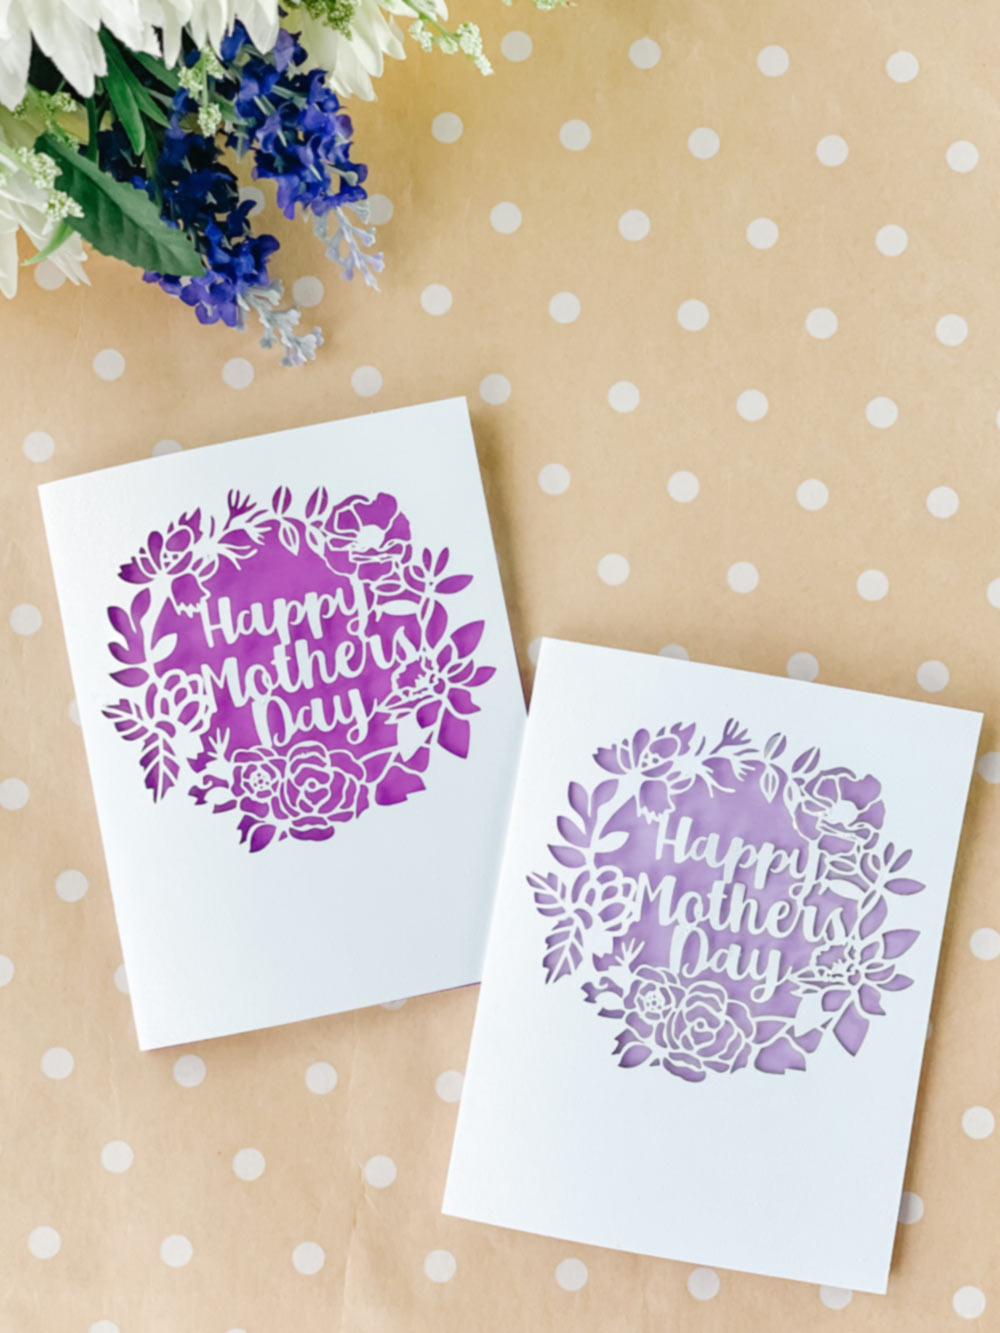 Happy Mother's Day Paper Cut Card